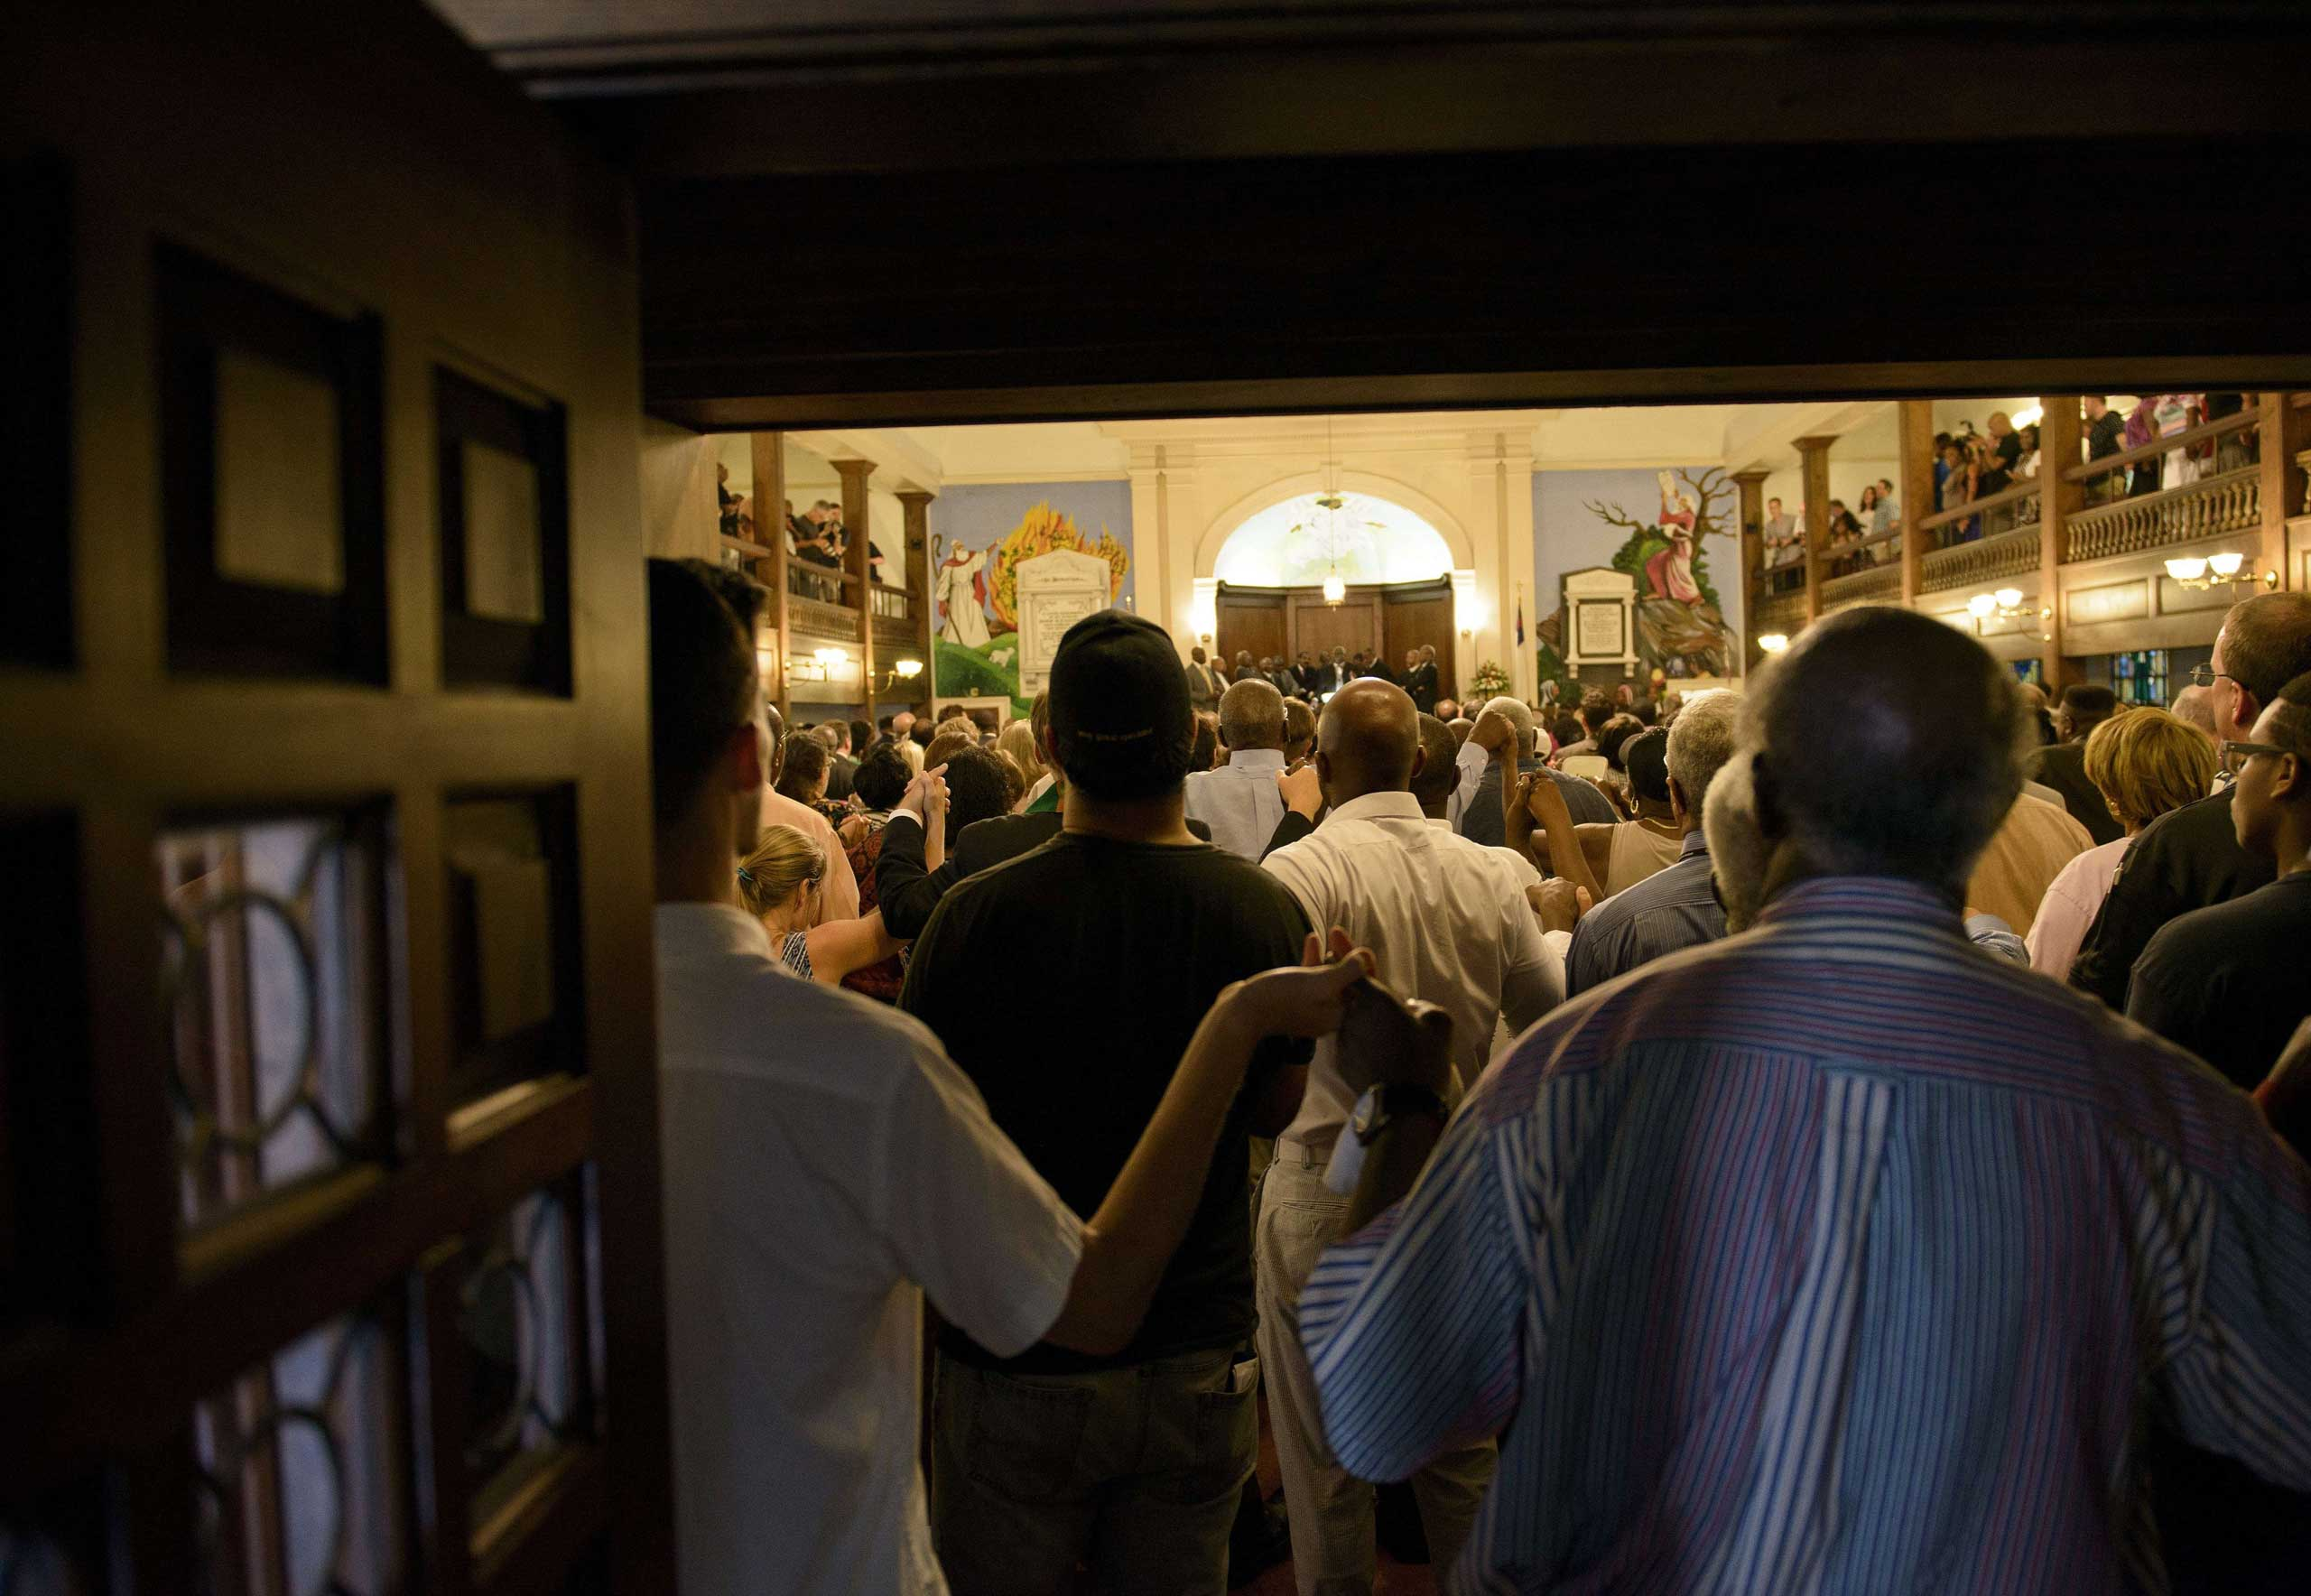 People sing  We Shall Overcome  during a service at Morris Brown AME Church in Charleston, S.C., on June 18, 2015.